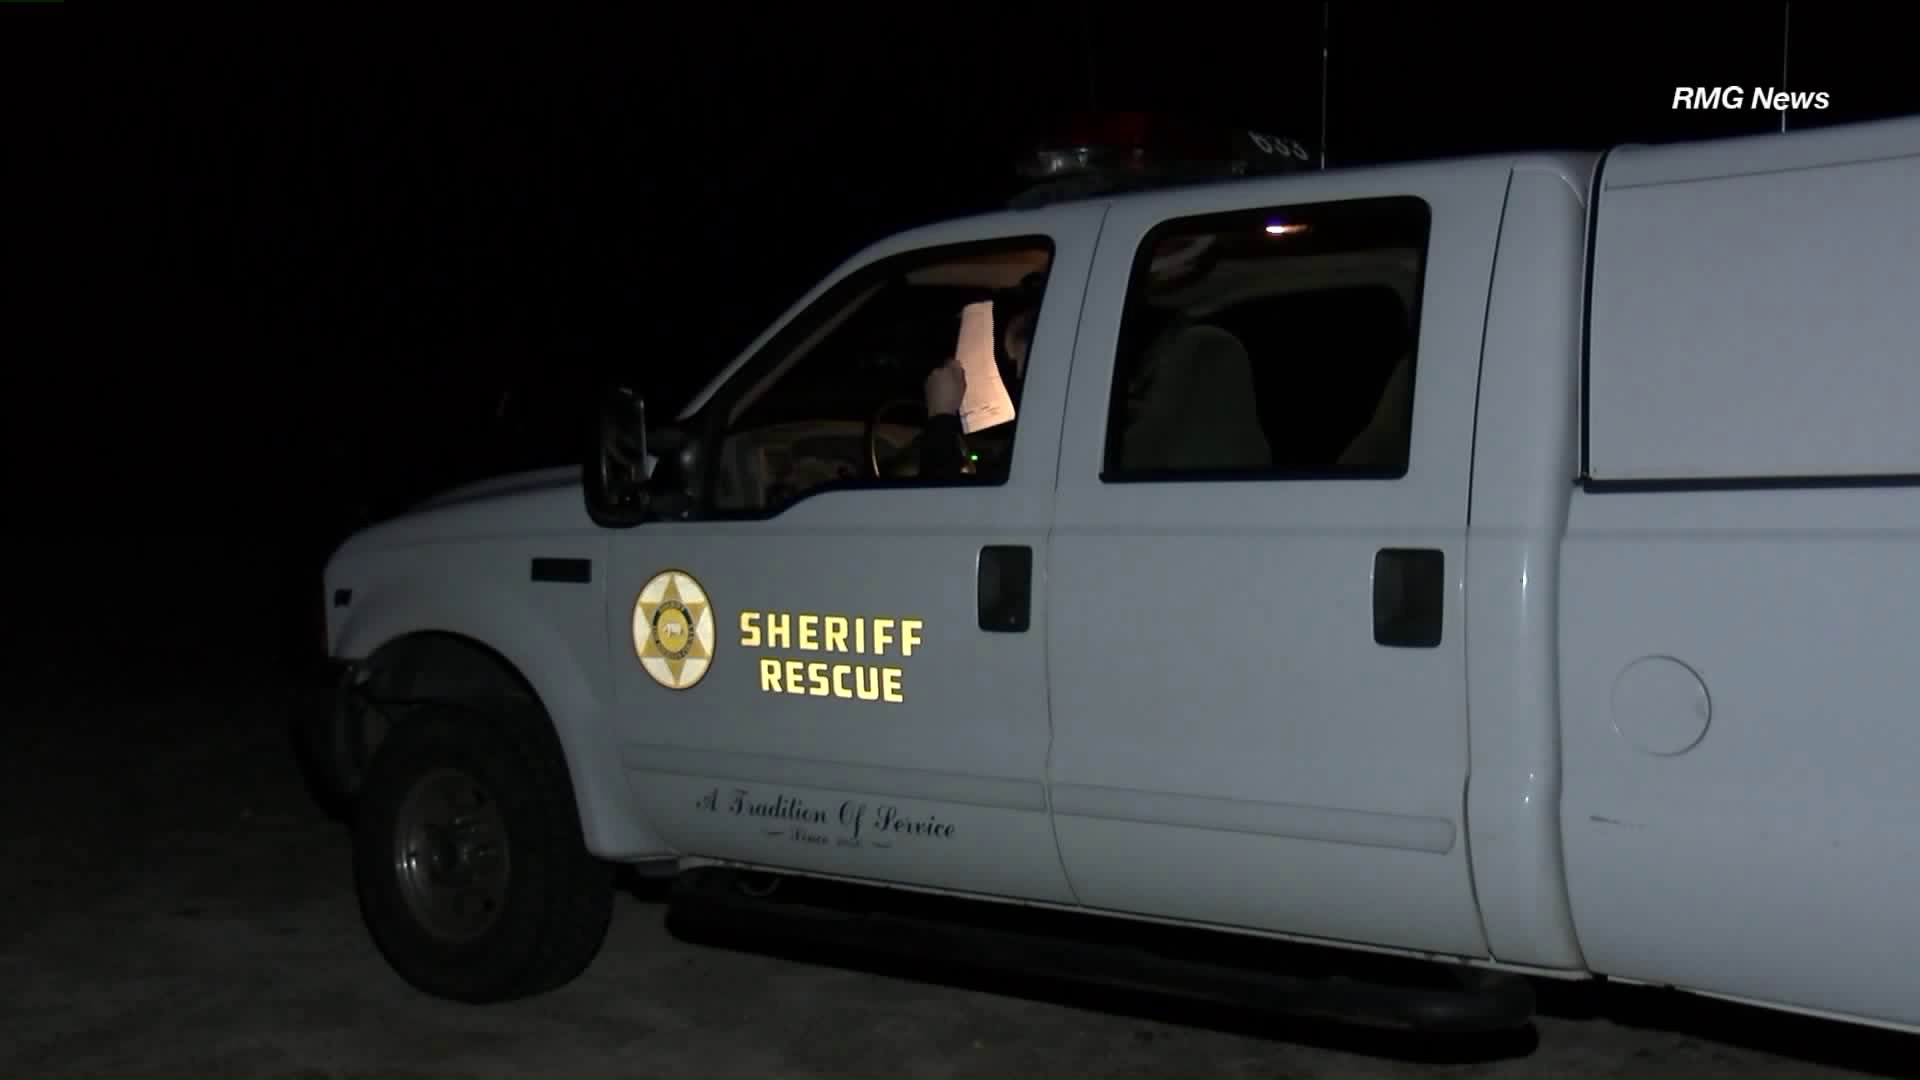 A search and rescue team was looking for a 58-year-old man in Angeles National Forest on Jan. 21, 2019. (Credit: RMG News)